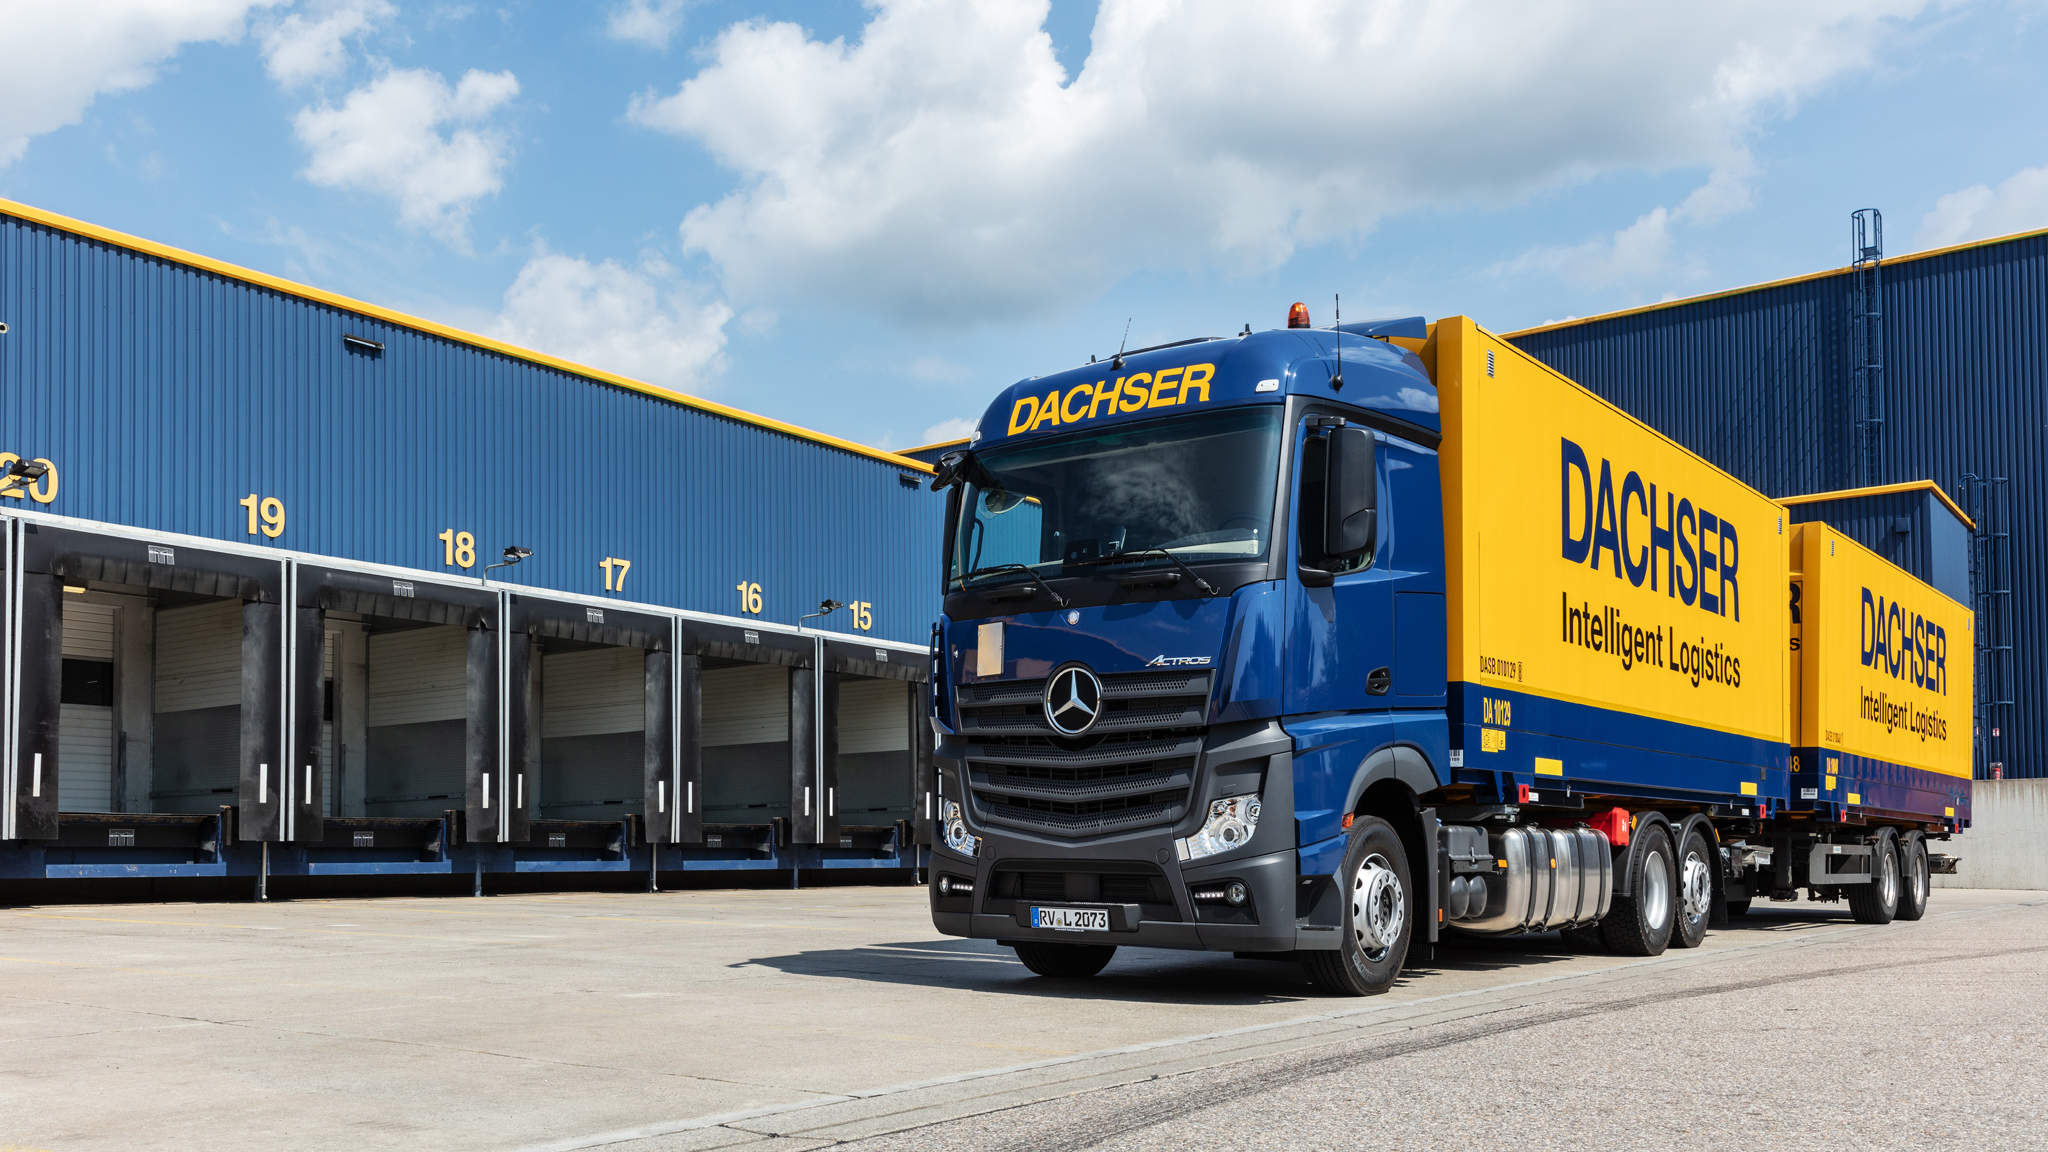 DACHSER pursues sustainable growth